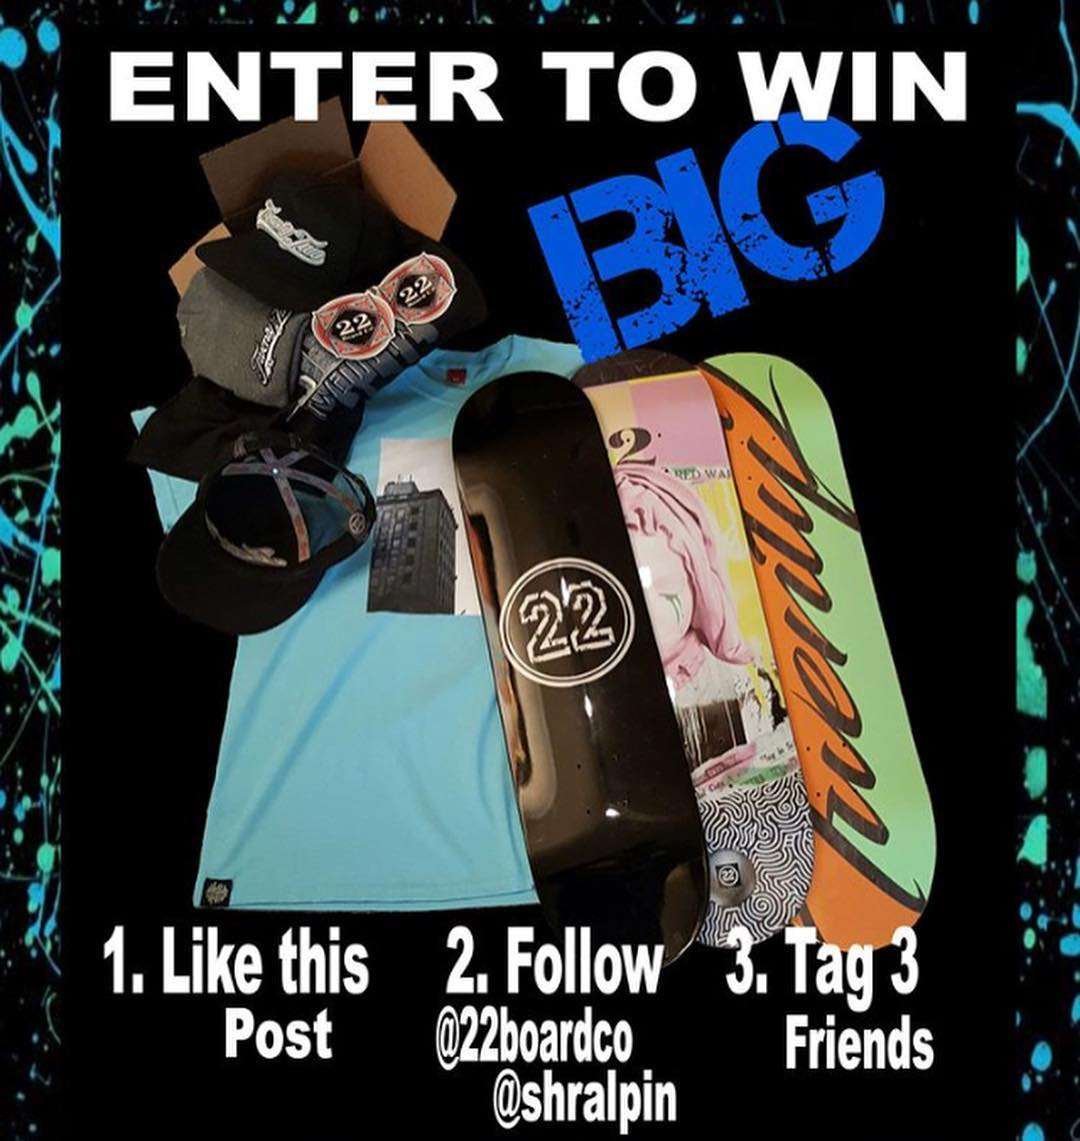 42903586 278775469637096 8689453628275227512 n - Enter to win this huge package from @22boardco   1. Like this post 2. Follow @22...